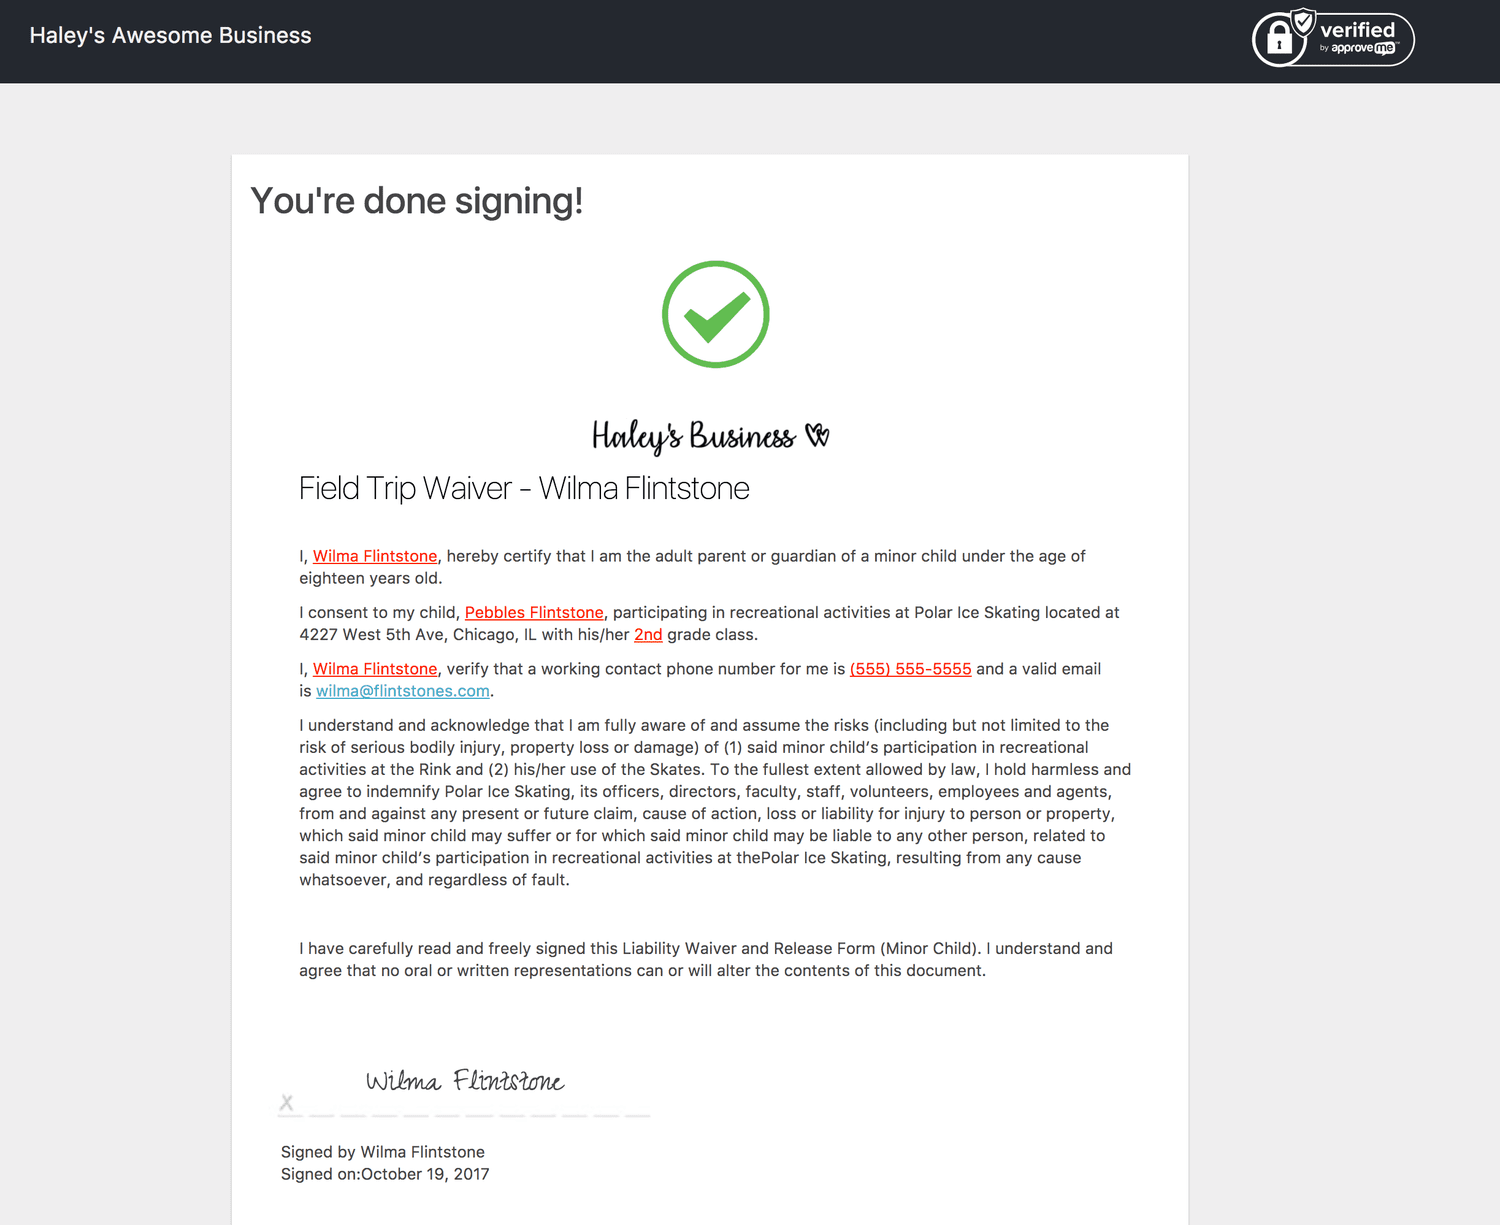 sign contracts online with gravity forms